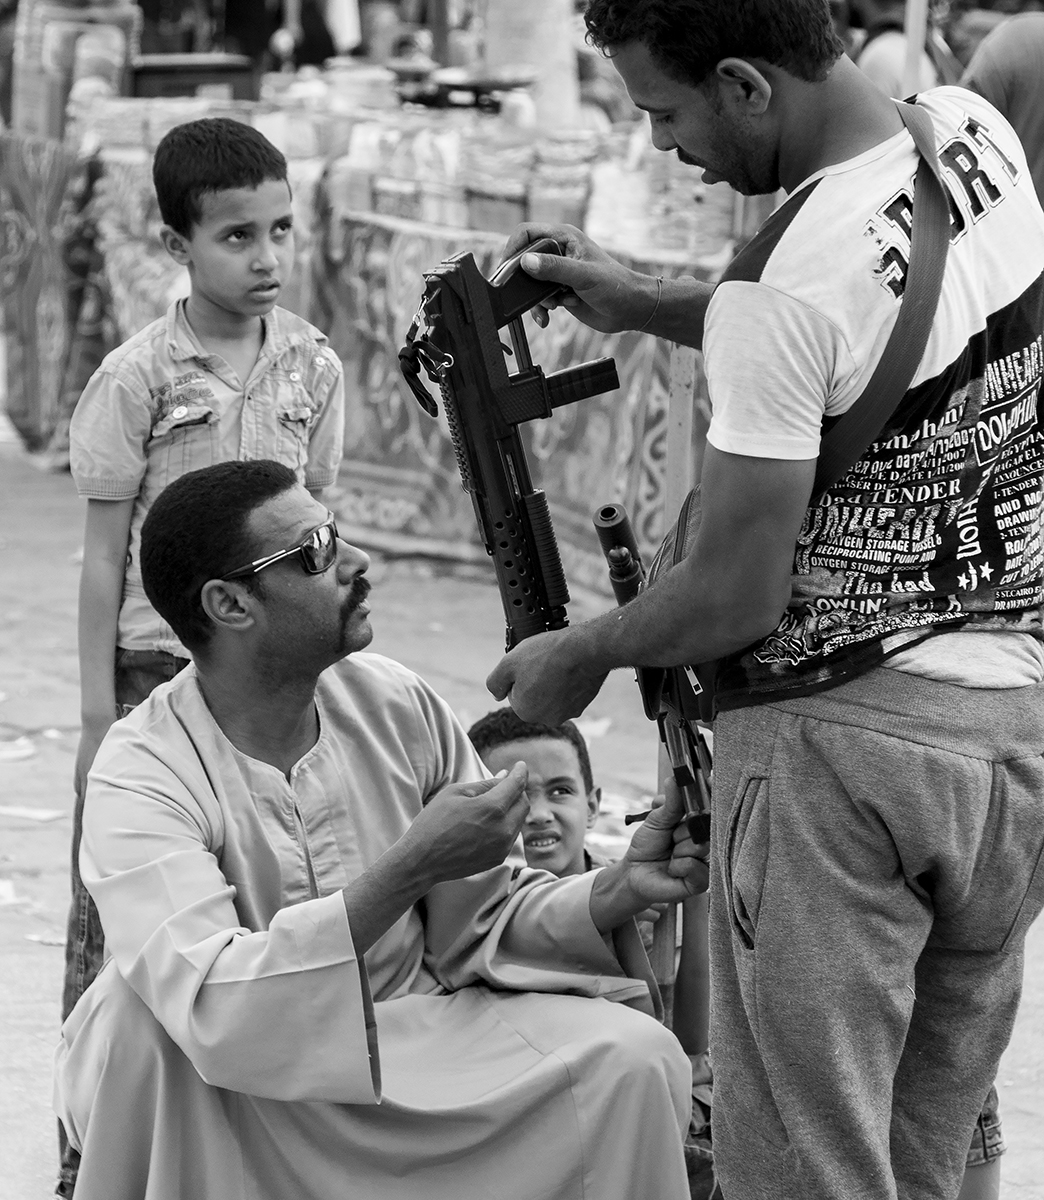 A common business transaction at a local street market, Luxor, Egypt